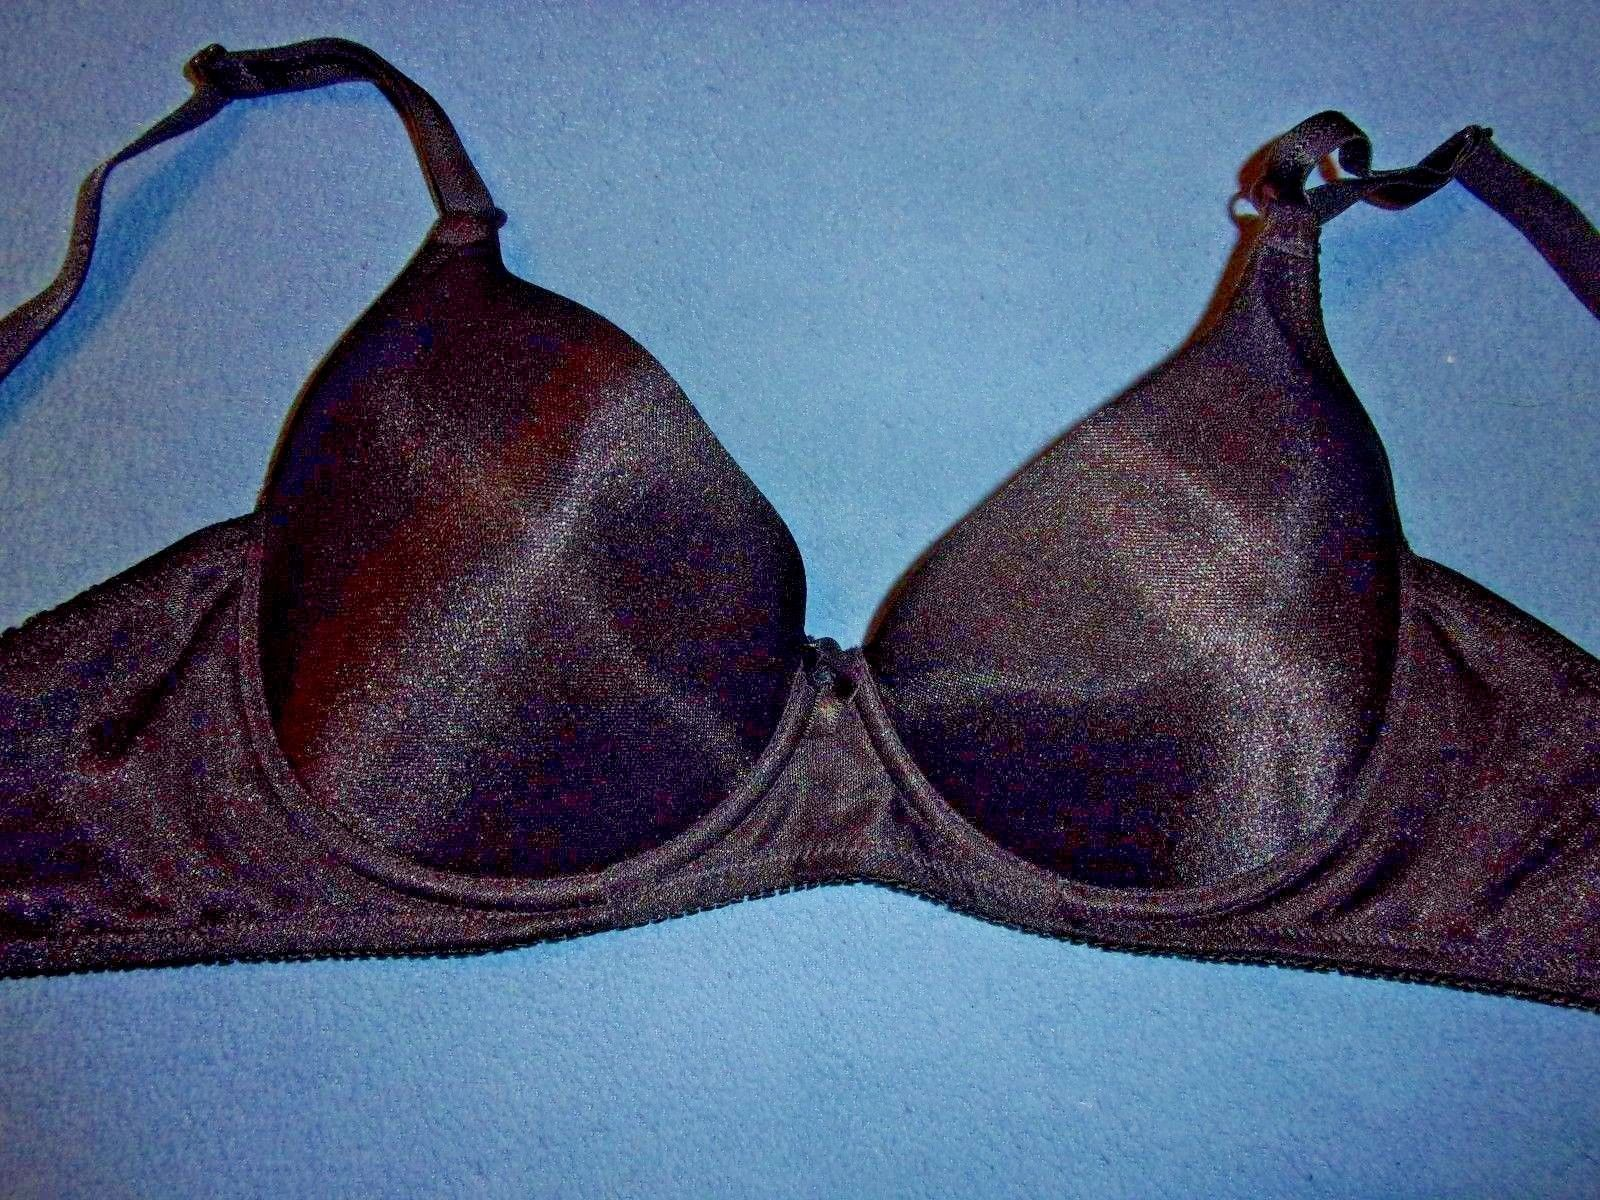 0dbb5619b9f43 34C Fruit of the Loom Cotton Push Up Bra and 14 similar items. S l1600